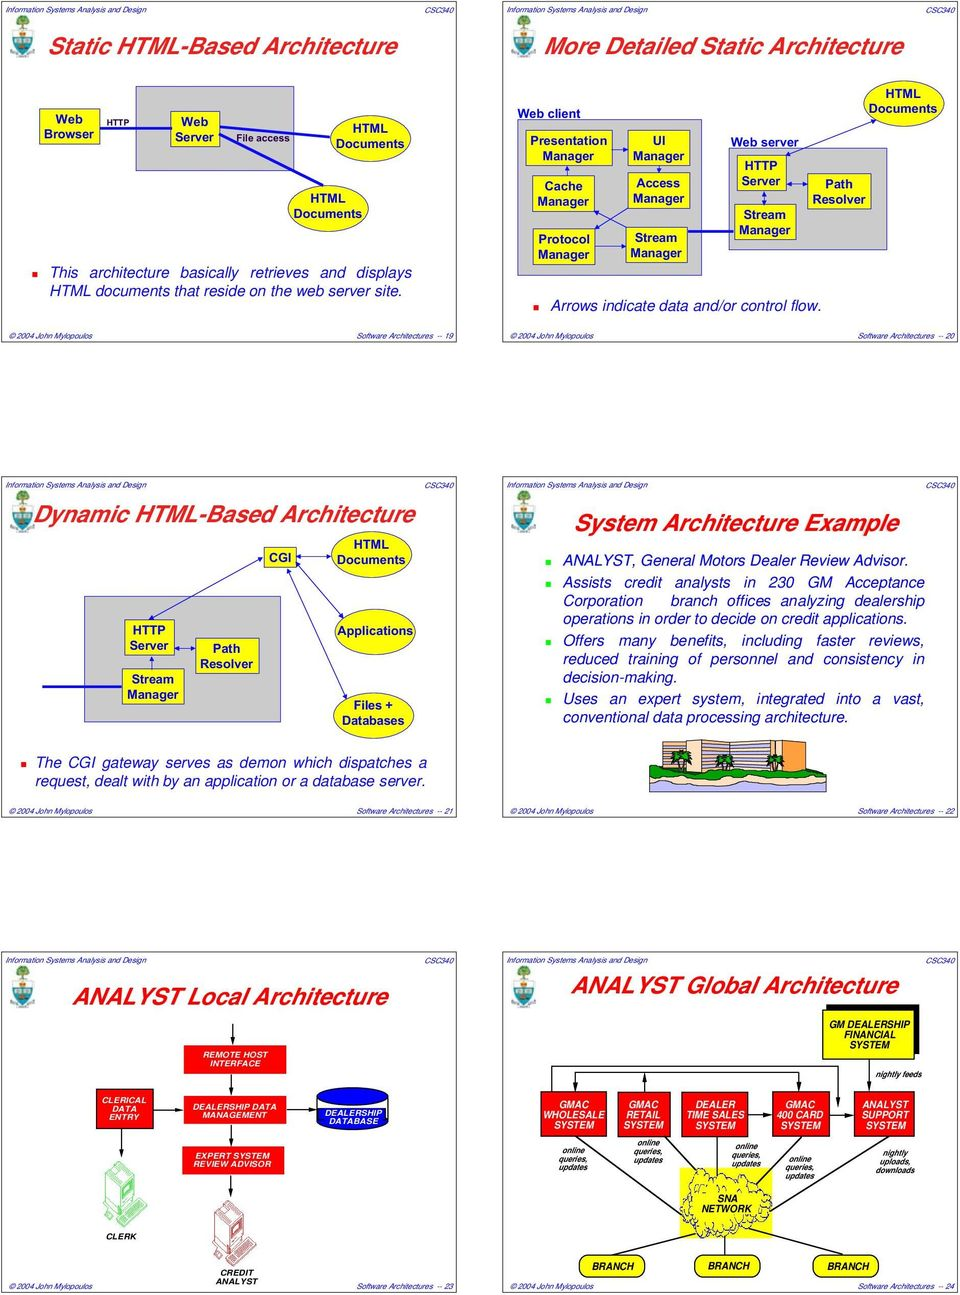 Path Resolver HTML Documents Software Architectures -- 19 Software Architectures -- 20 Dynamic HTML-Based Architecture HTTP Stream Path Resolver CGI HTML Documents Applications Files + Databases